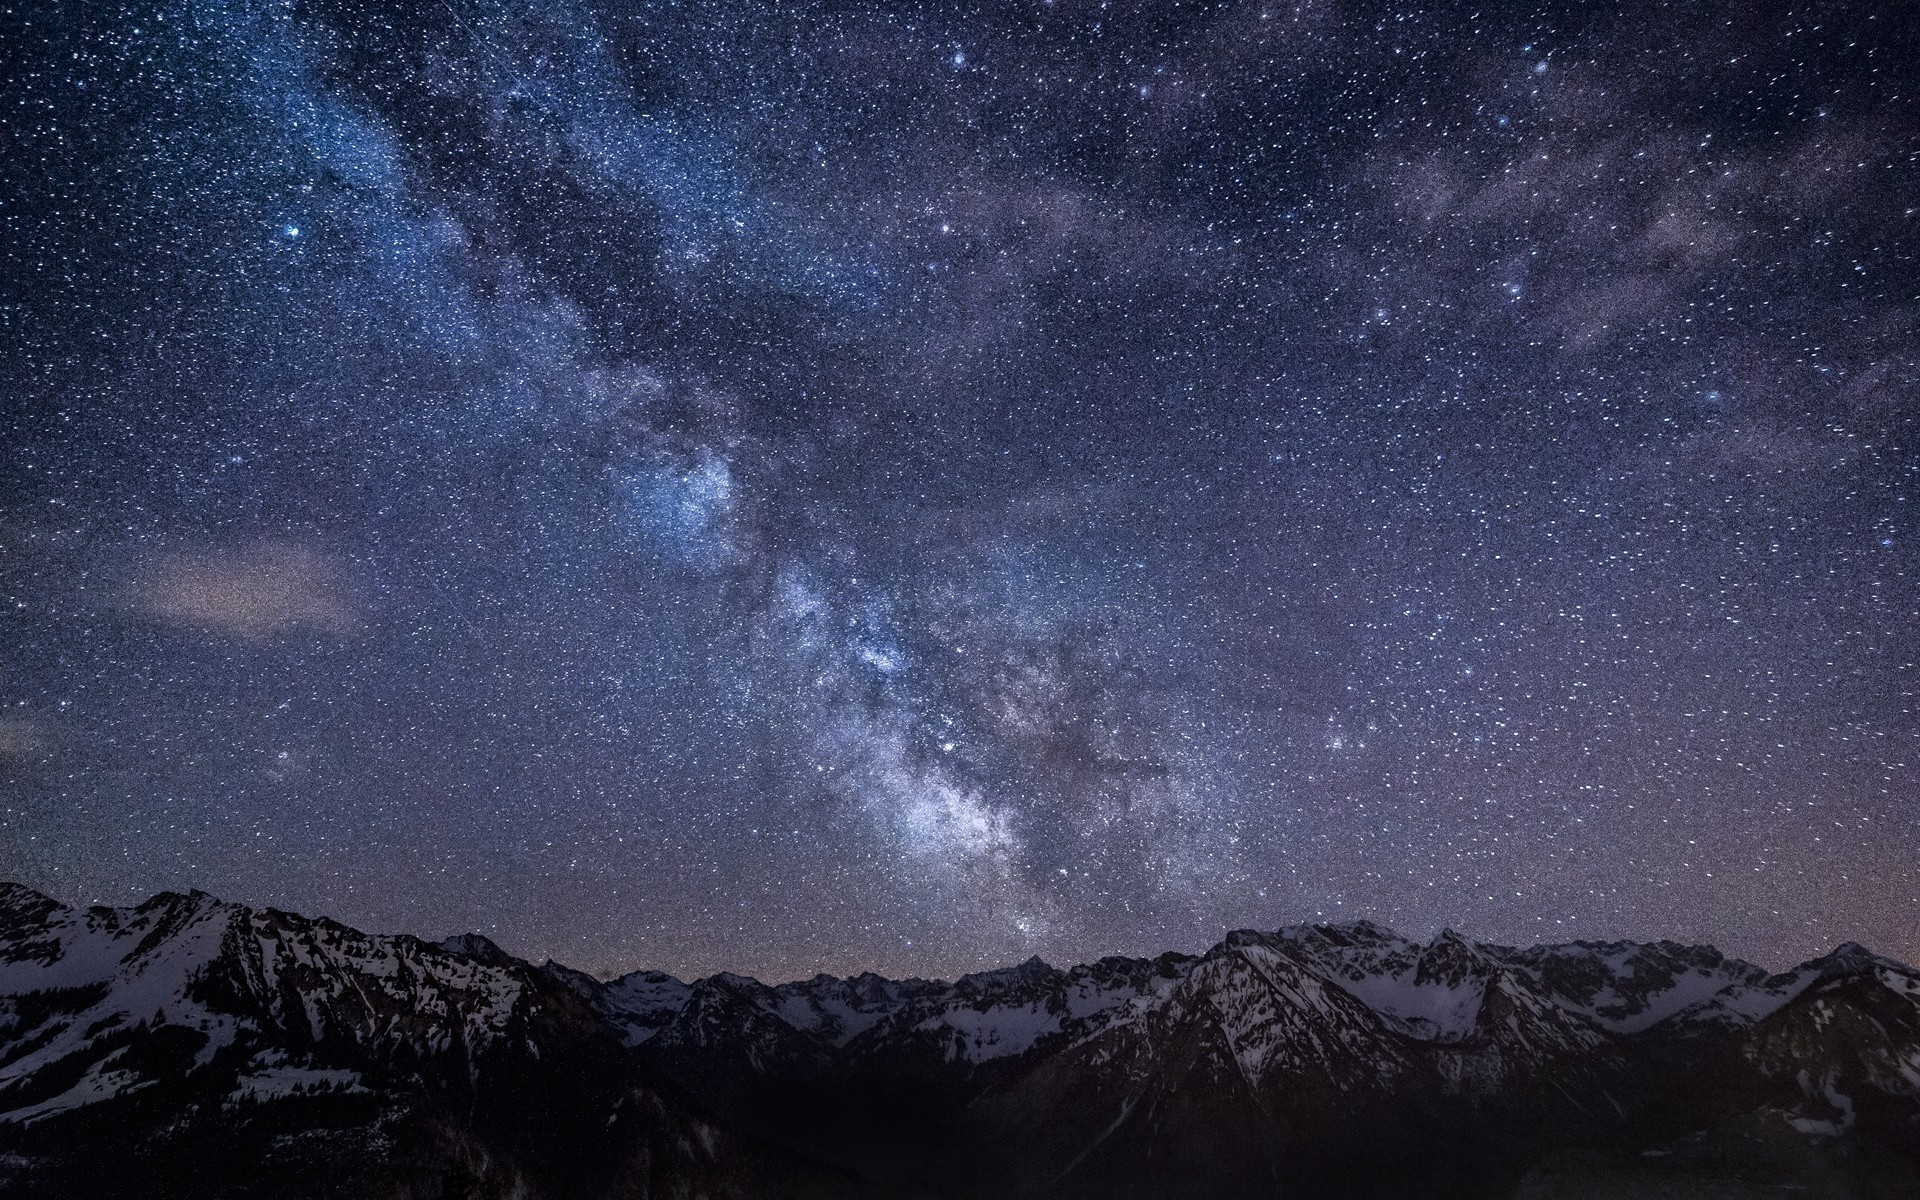 stars, Night, Landscape, Starry Night, Mountain, Long Exposure, Galaxy  Wallpapers HD / Desktop and Mobile Backgrounds